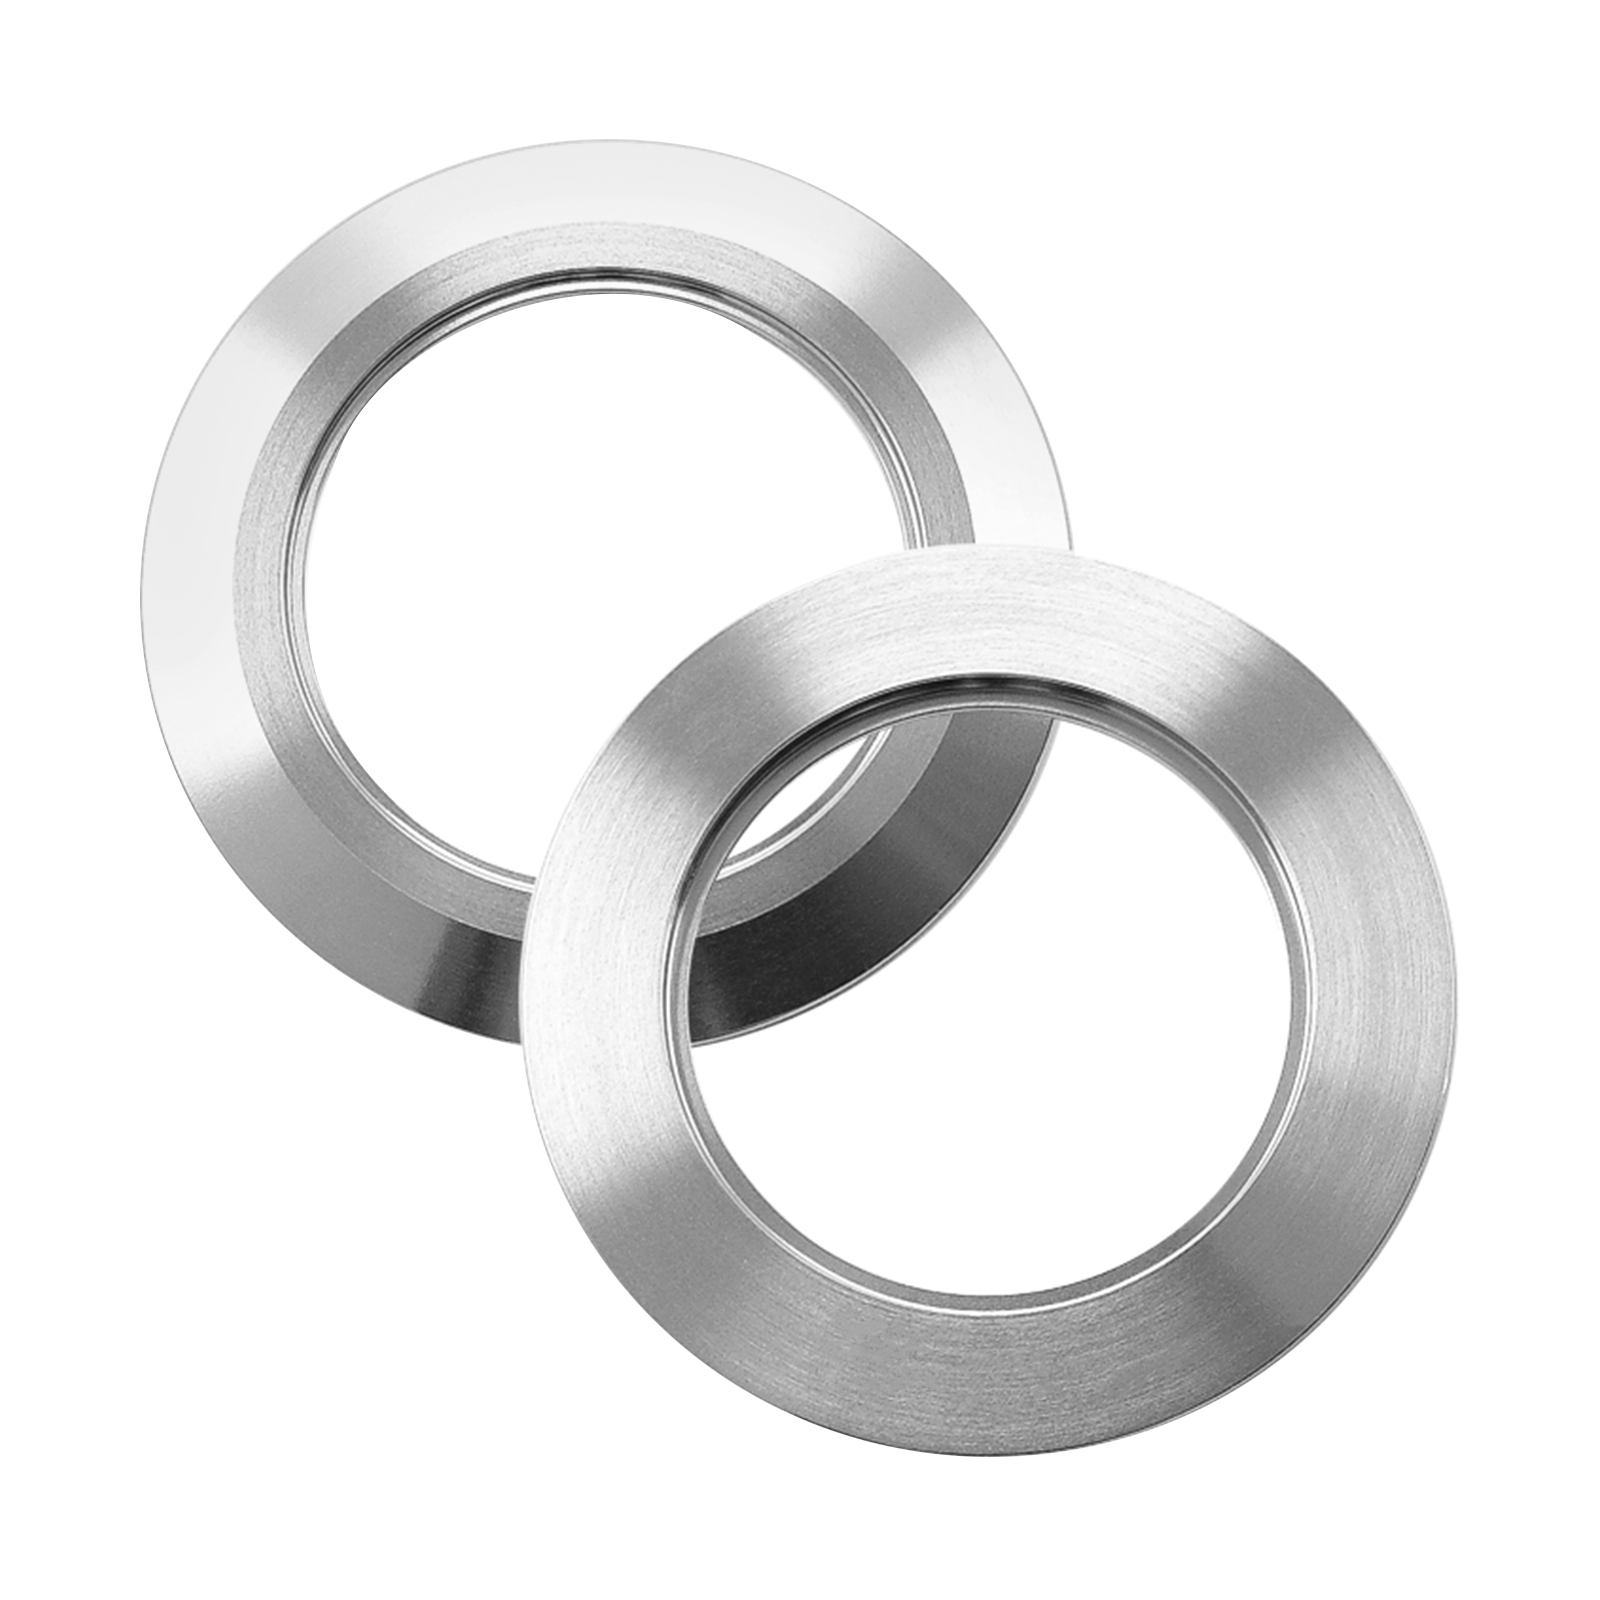 ISO-KF63 Stainless Steel Blank Vacuum Flanges with Bore, 2.5″